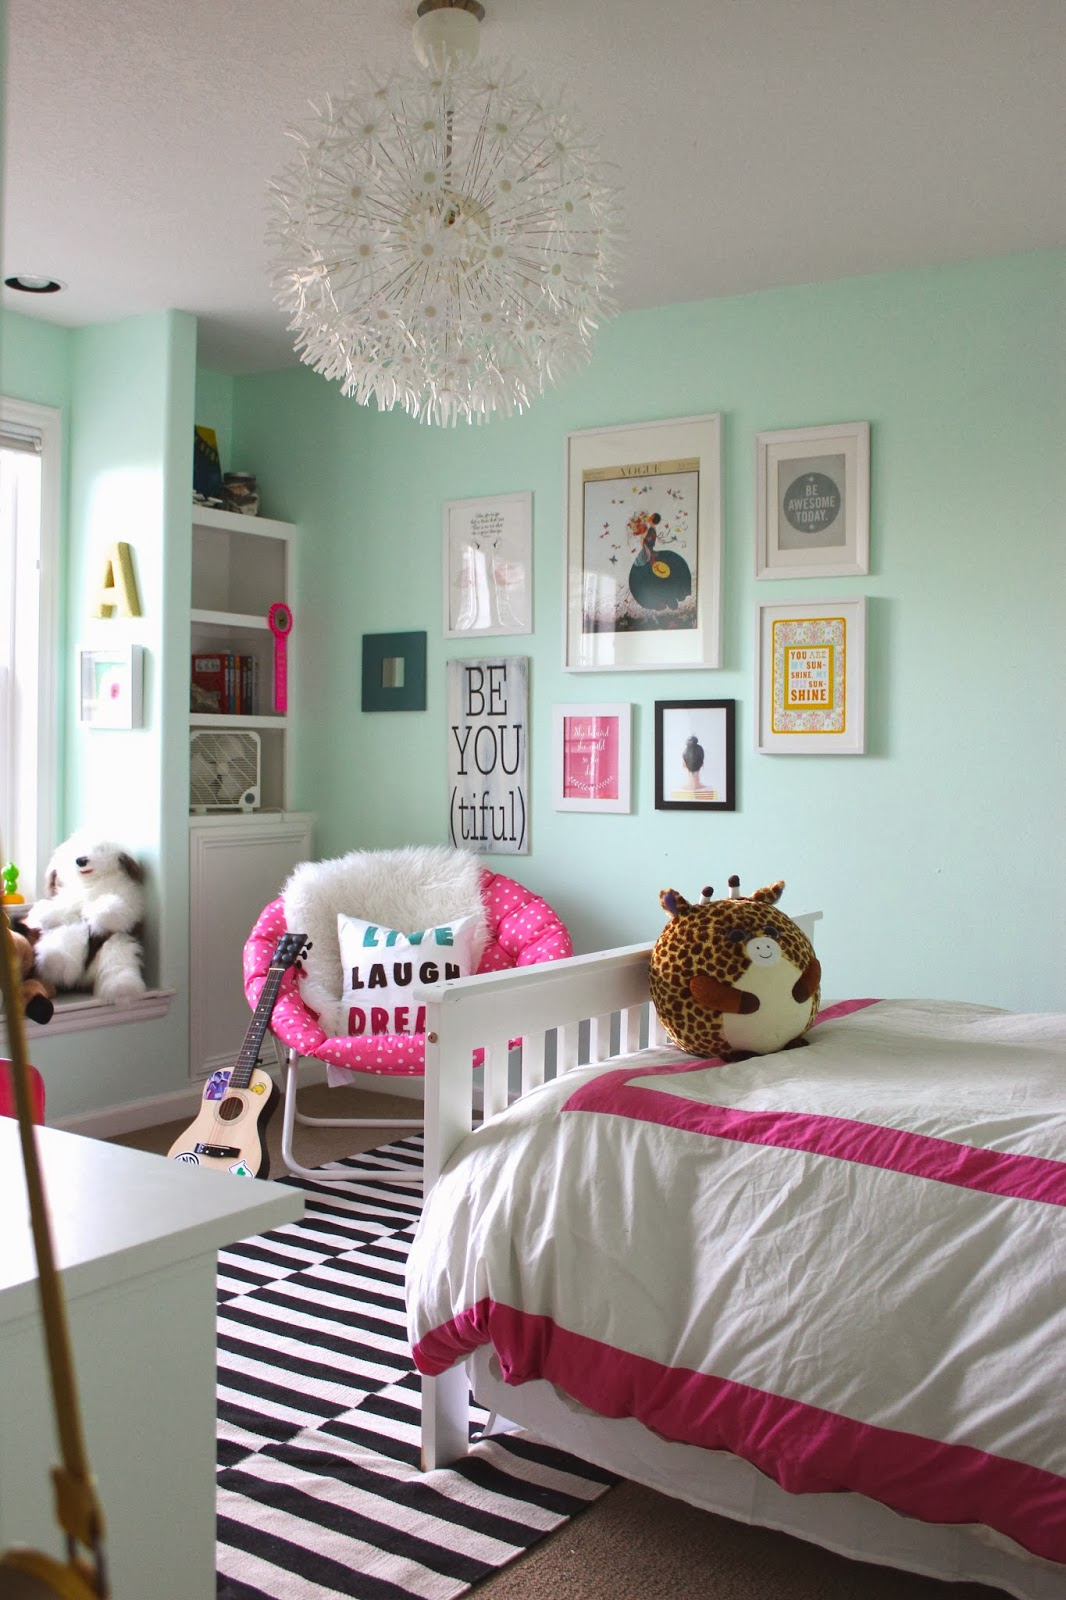 Teenage Room Designs For Girls: A Room Fit For A Tween!